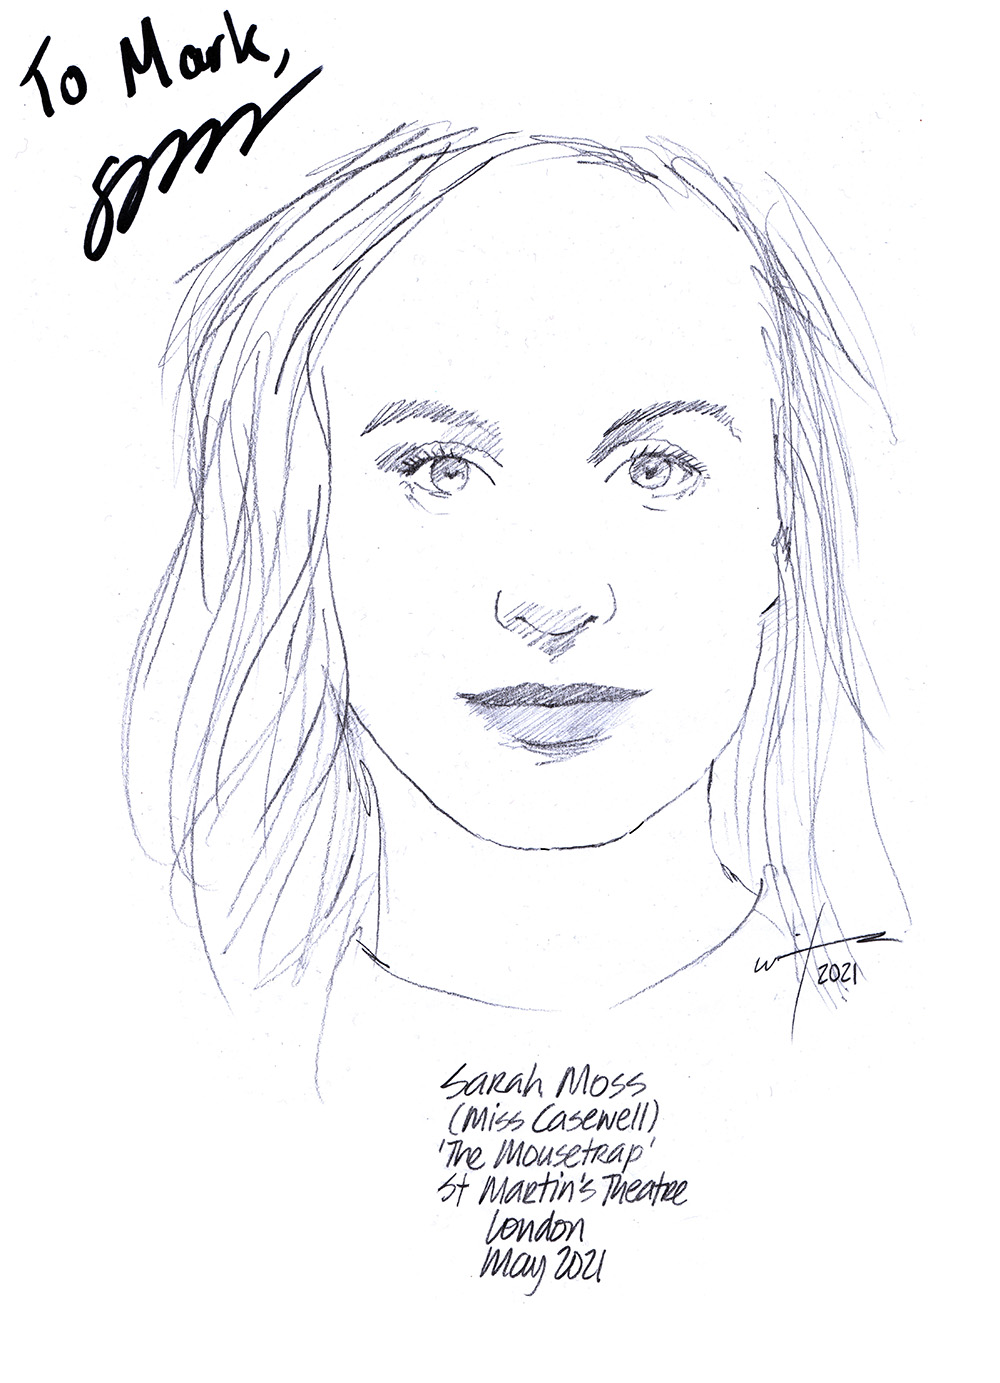 Autographed drawing of Sarah Moss as Miss Casewell in The Mousetrap at St Martin's Theatre on London's West End